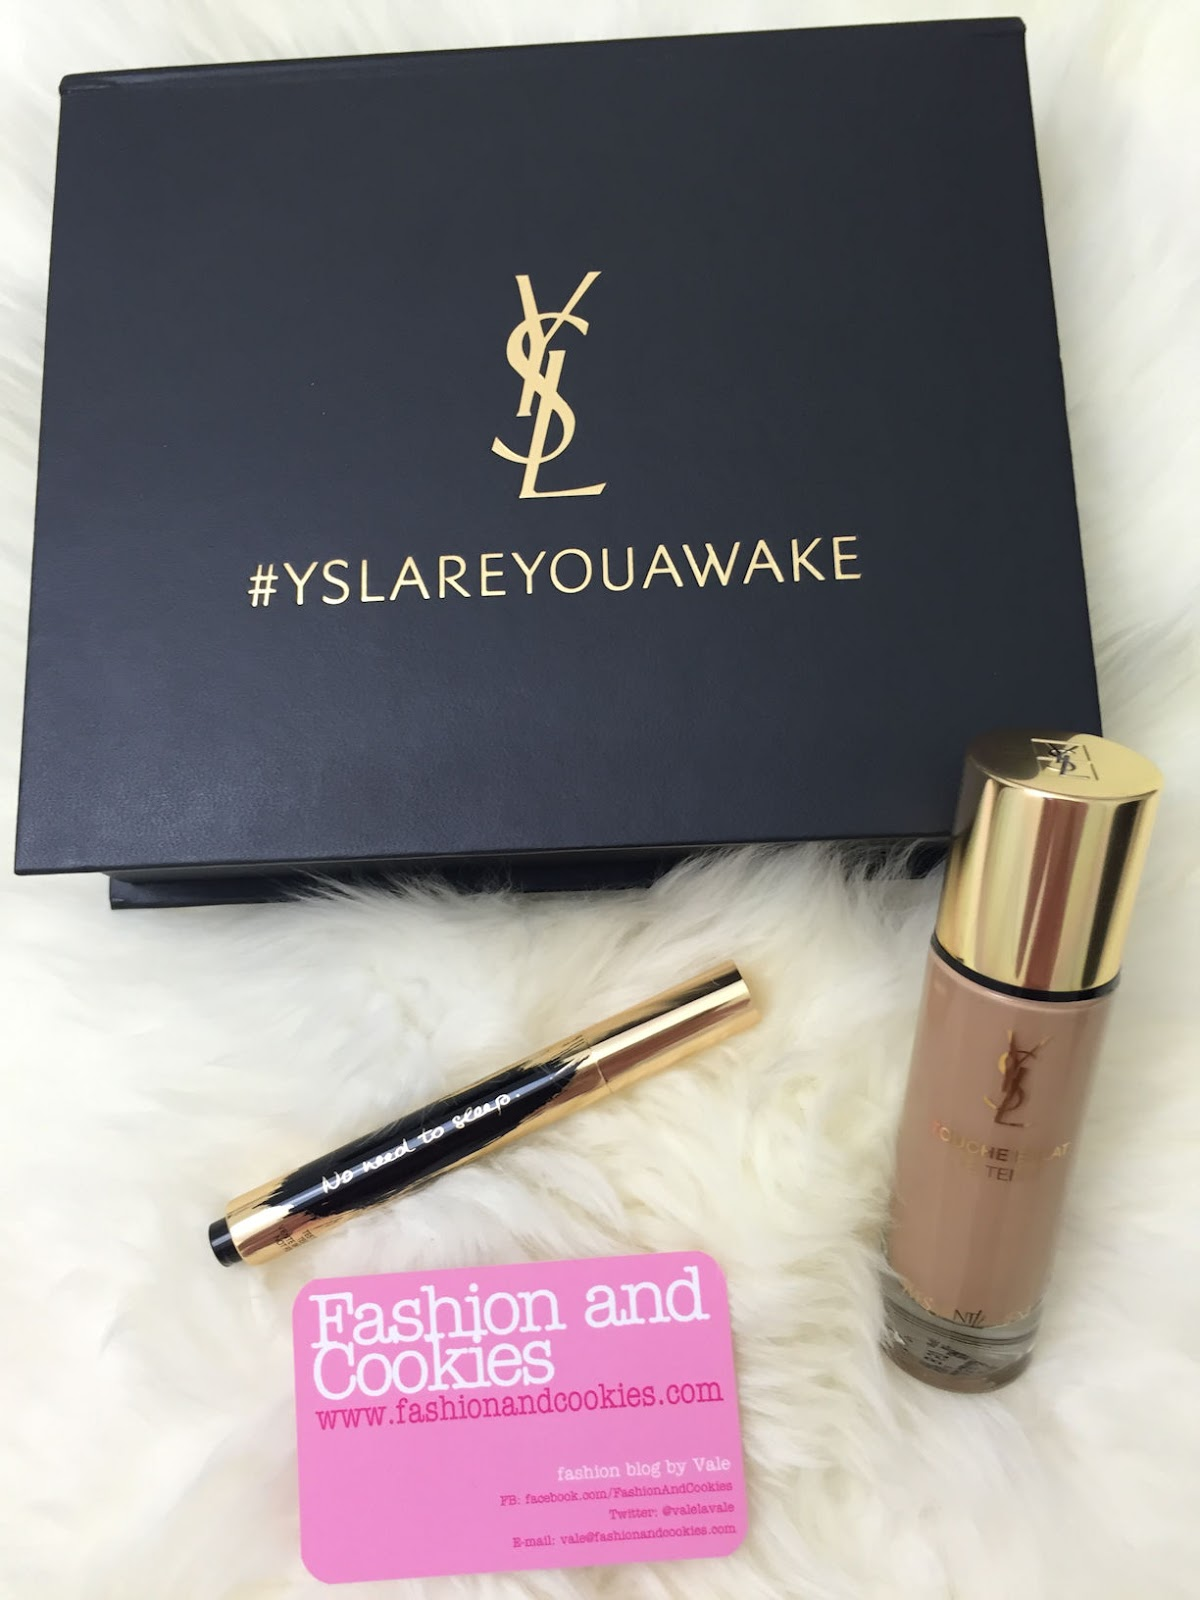 Touche Éclat Le Teint foundation and highlighter YSL Touche Éclat collector slogan edition on Fashion and Cookies beauty blog, beauty blogger